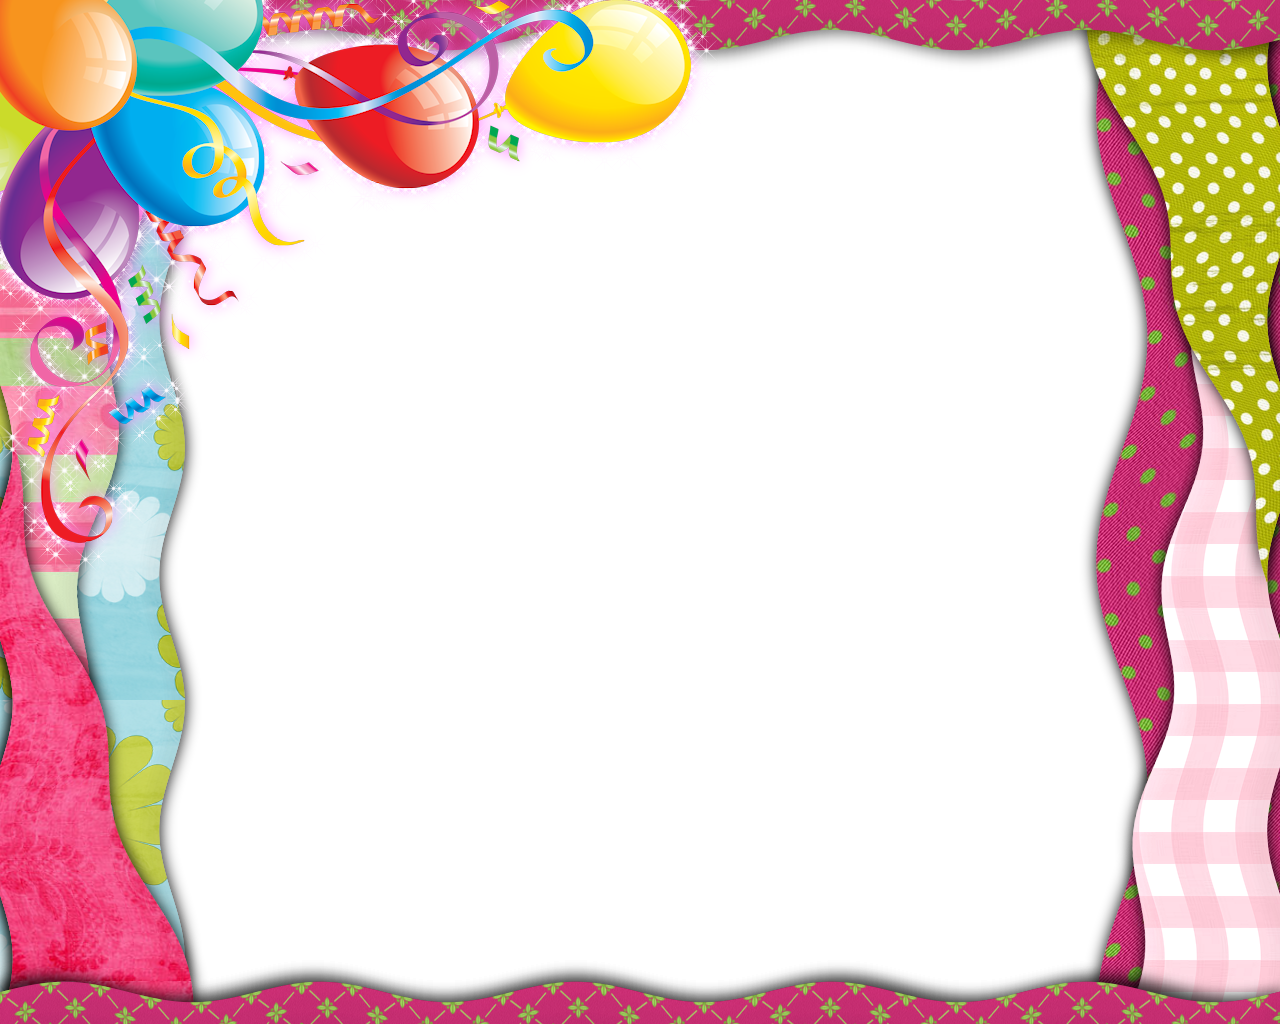 Clipart balloon frame. Pink transparent png with